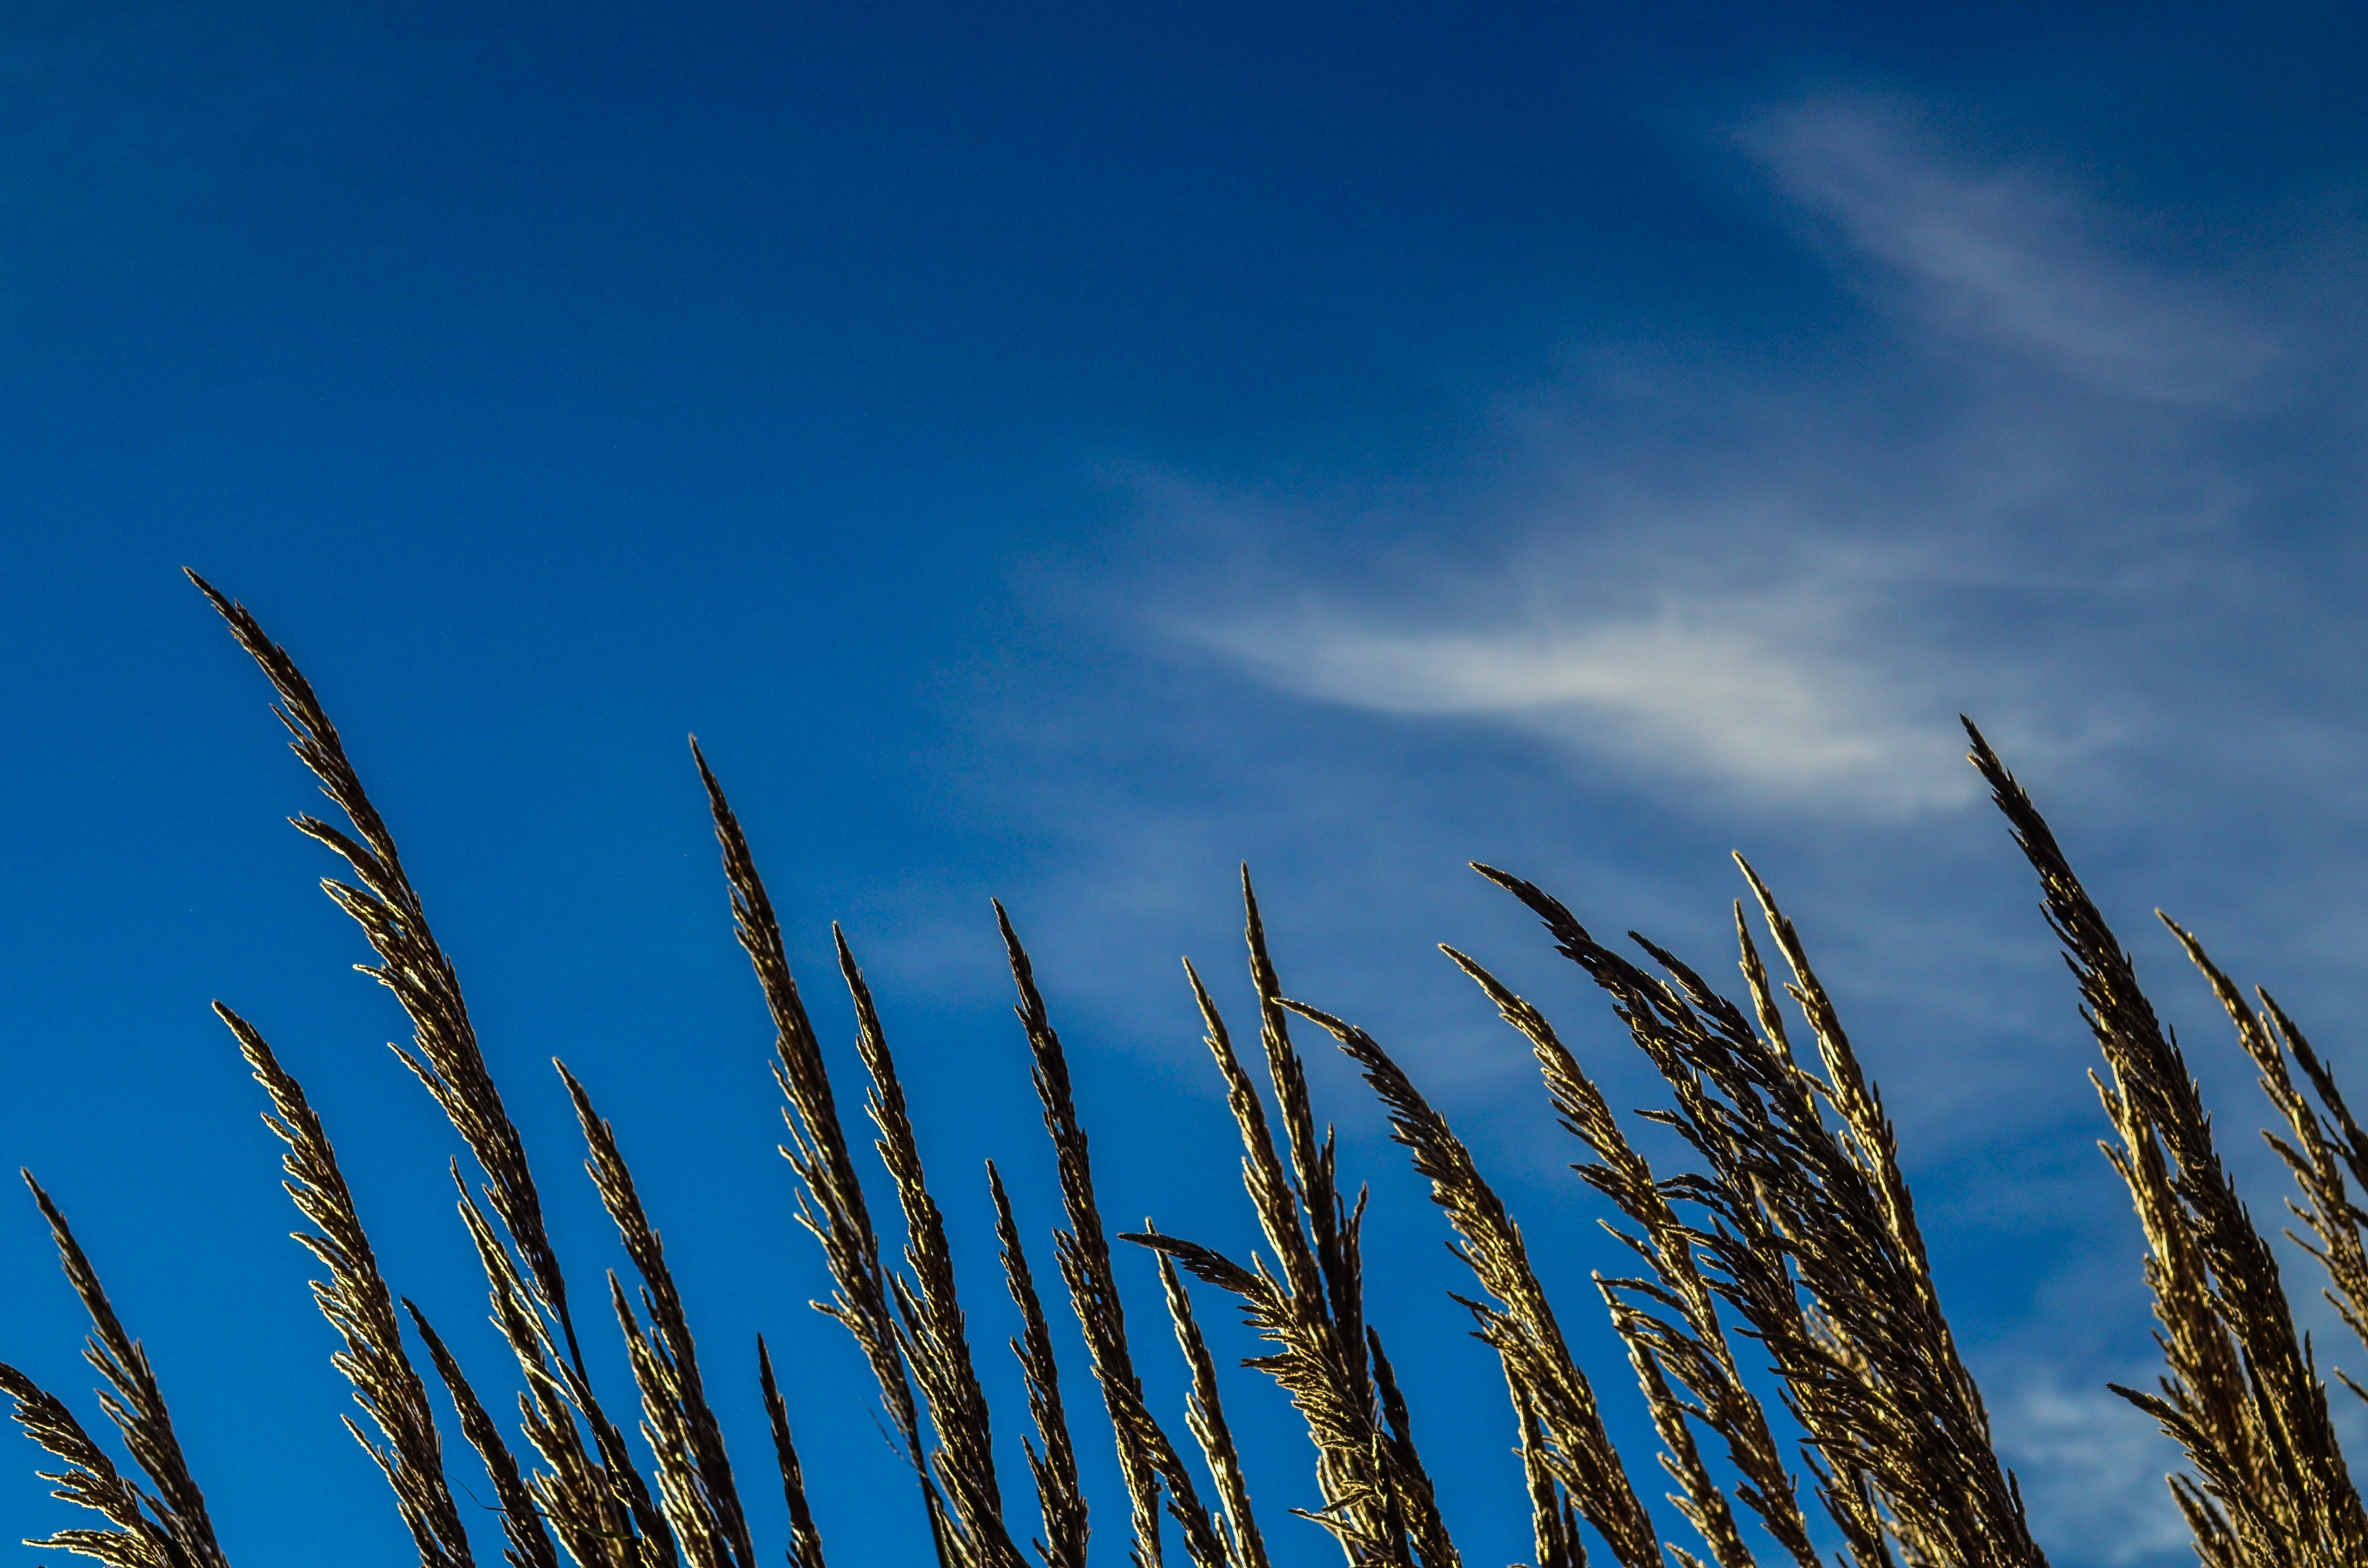 Brown Wheat With Sunrays Effect · Free Stock Photo